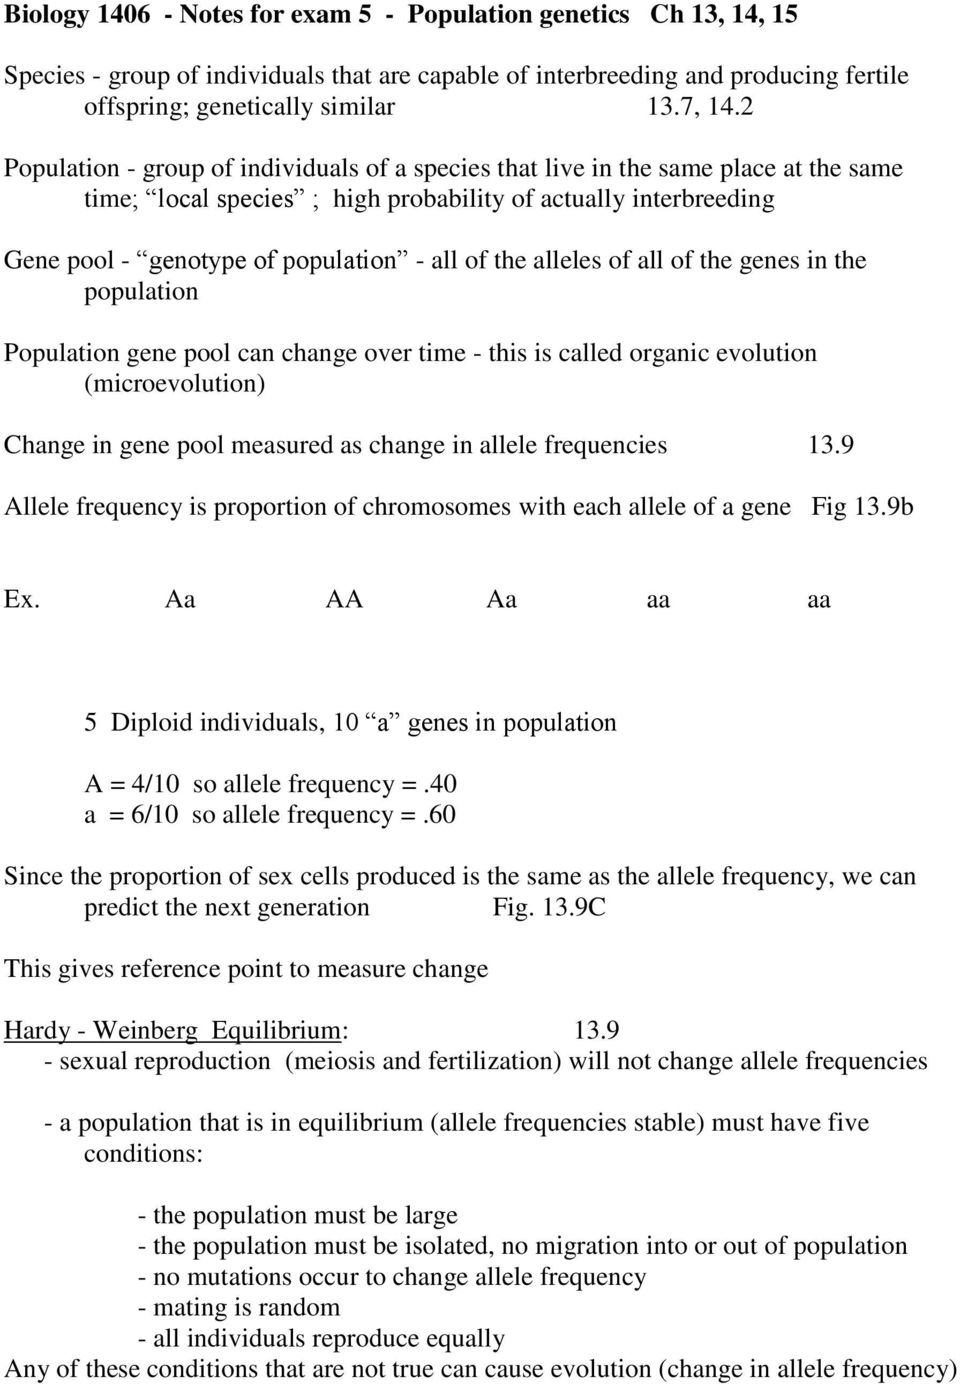 the alleles of all of the genes in the population Population gene pool can change over time - this is called organic evolution (microevolution) Change in gene pool measured as change in allele